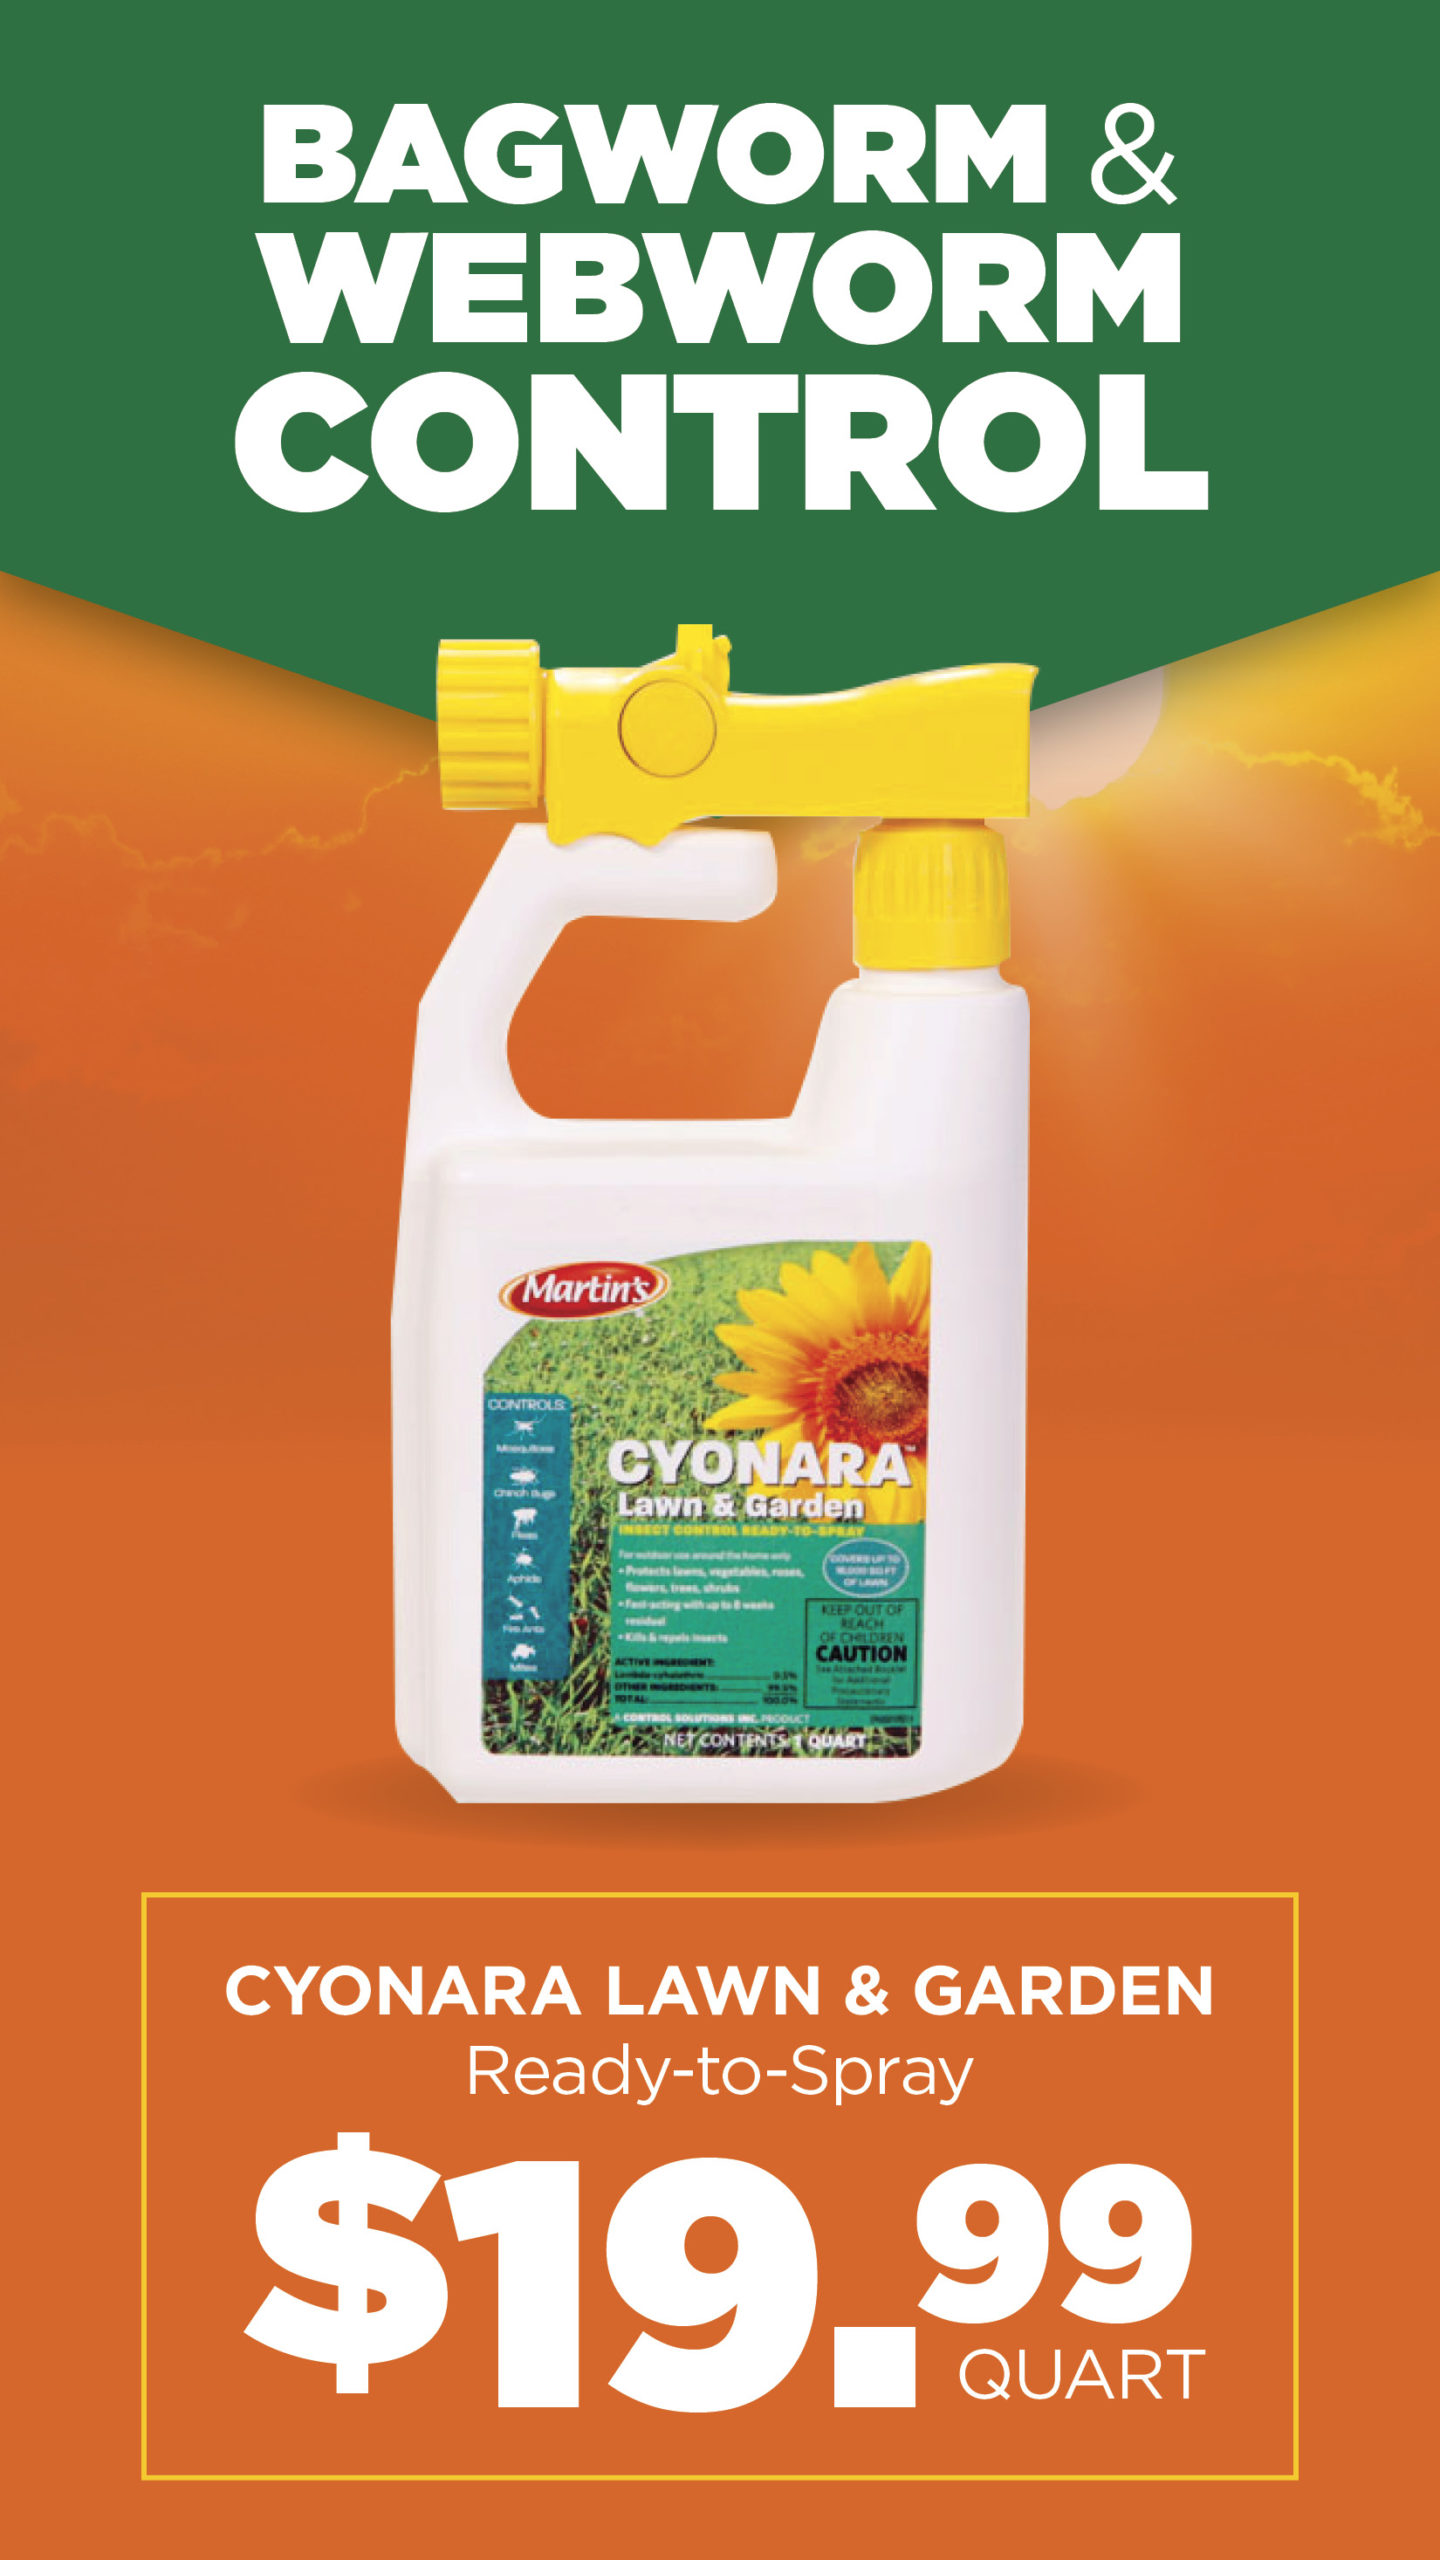 CYONARA | TLC Garden Center